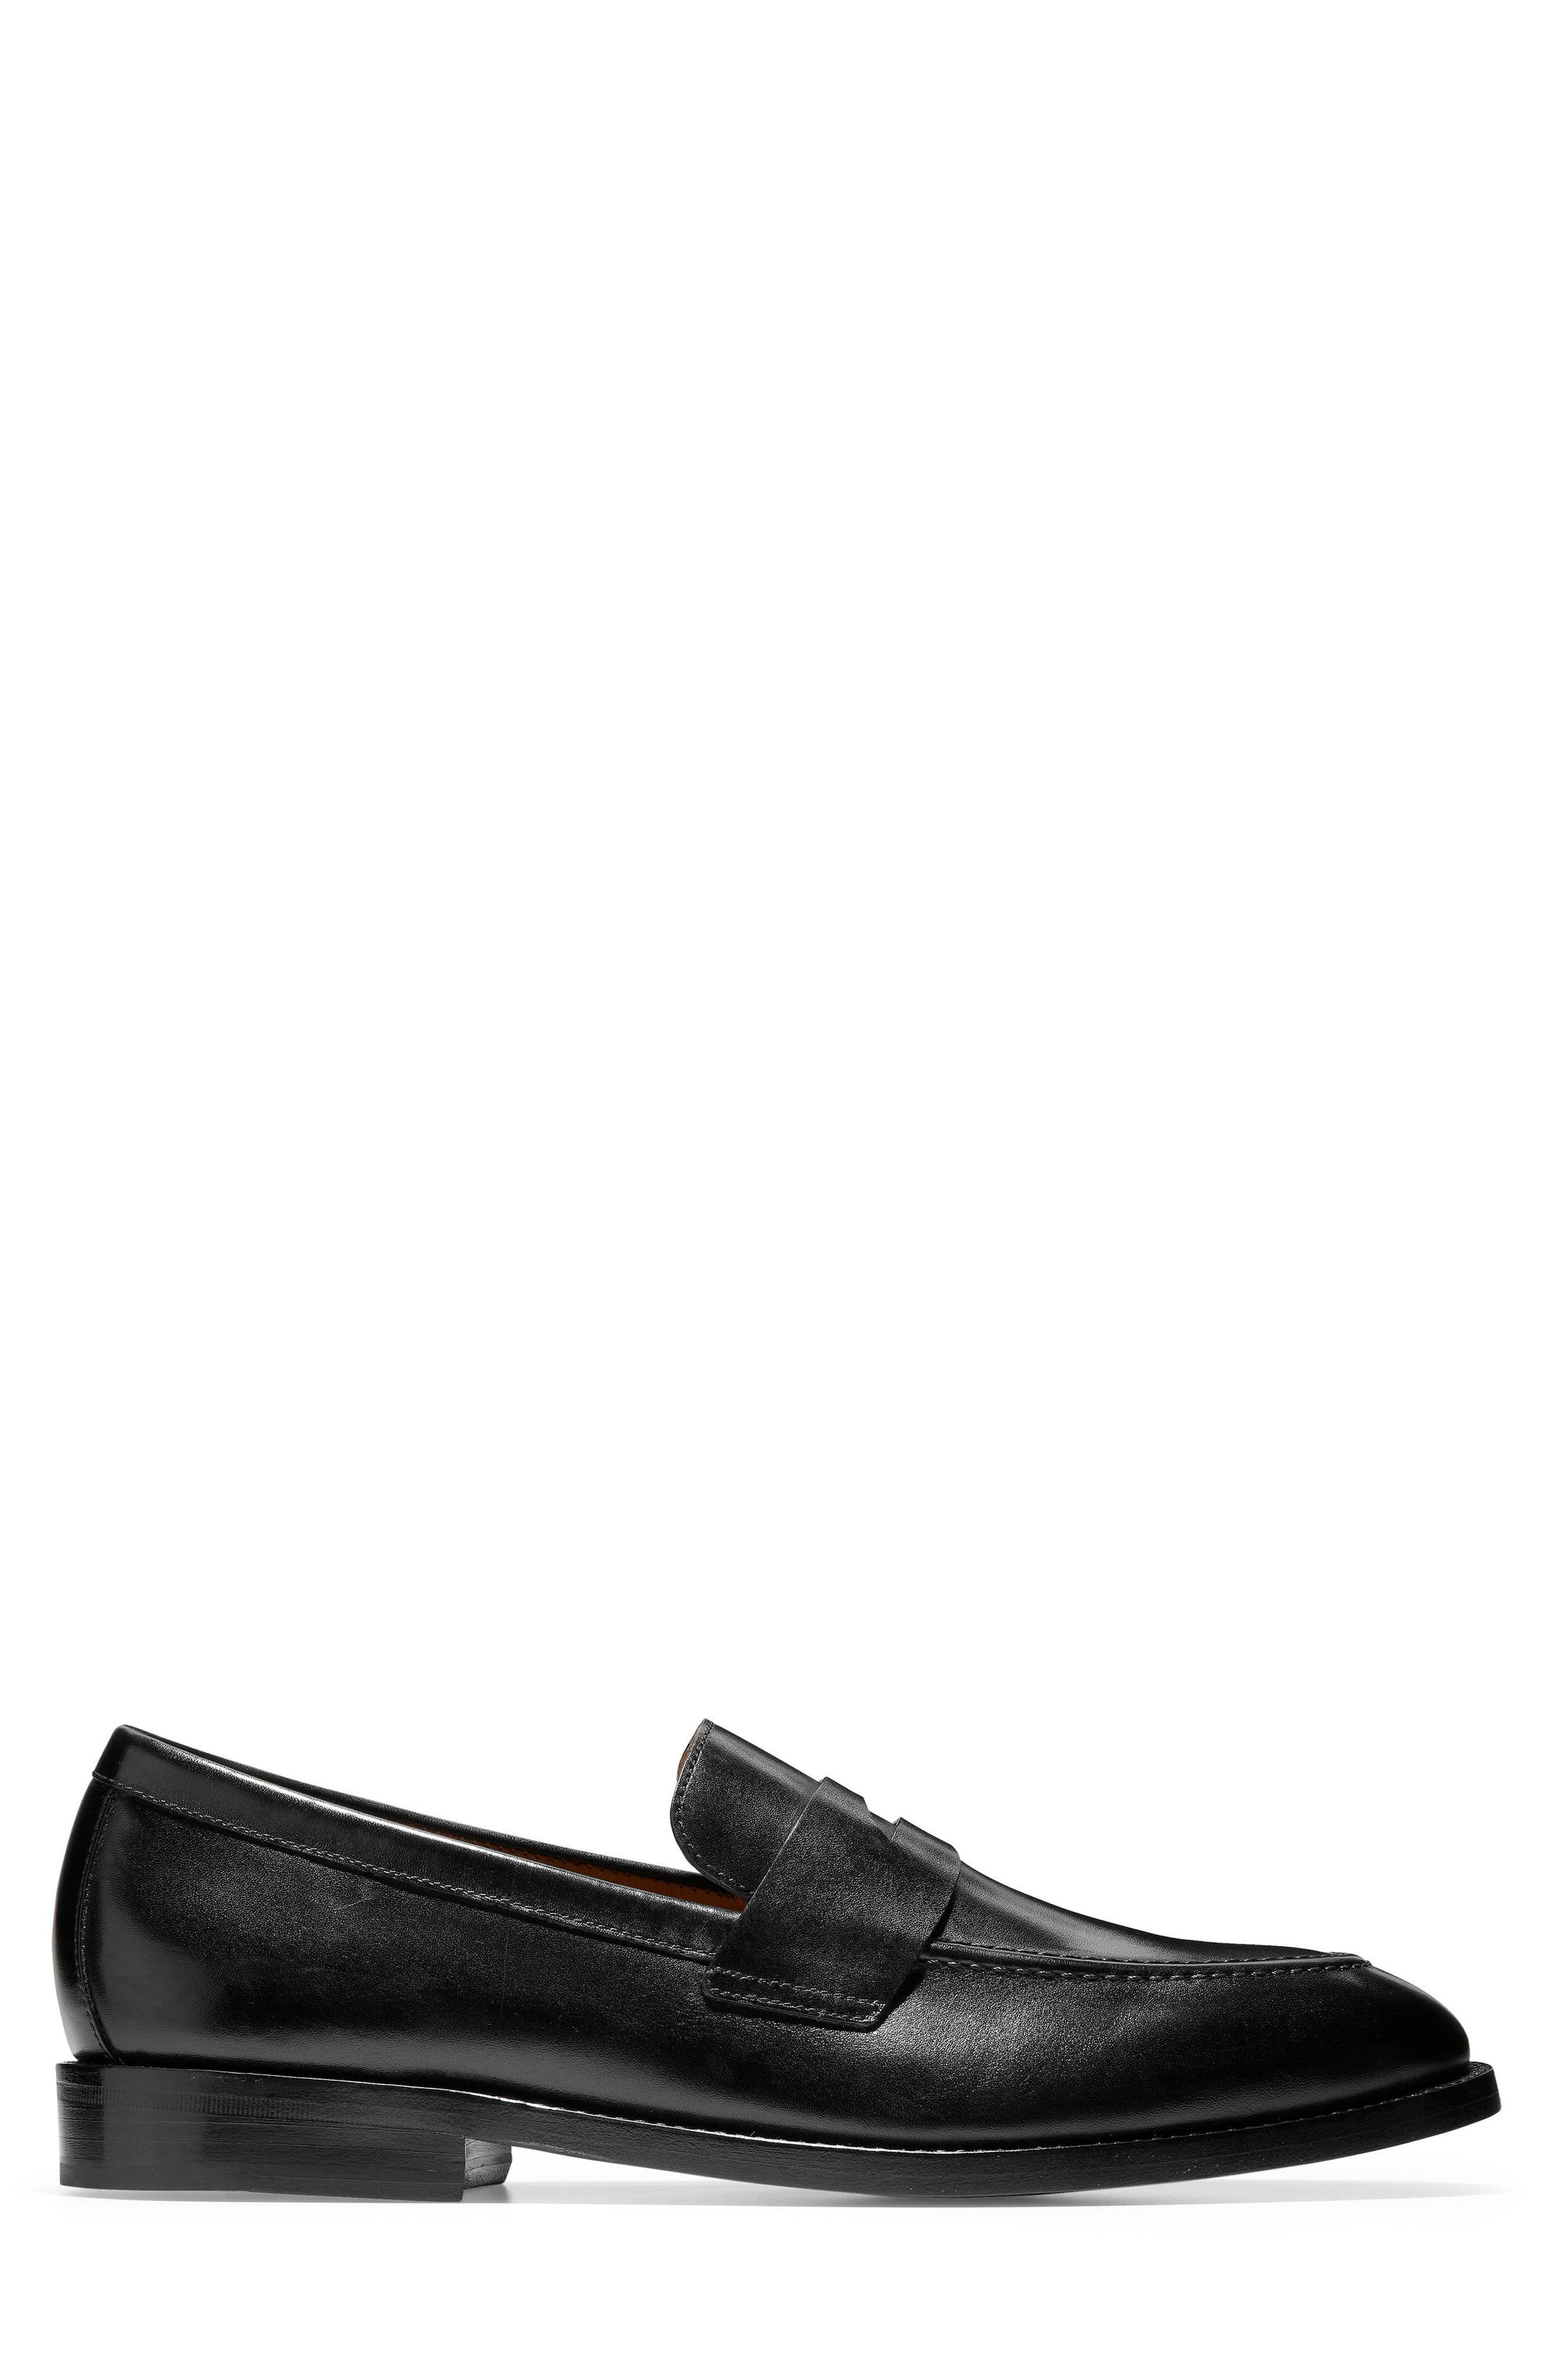 American Classics Kneeland Penny Loafer,                             Alternate thumbnail 3, color,                             BLACK LEATHER